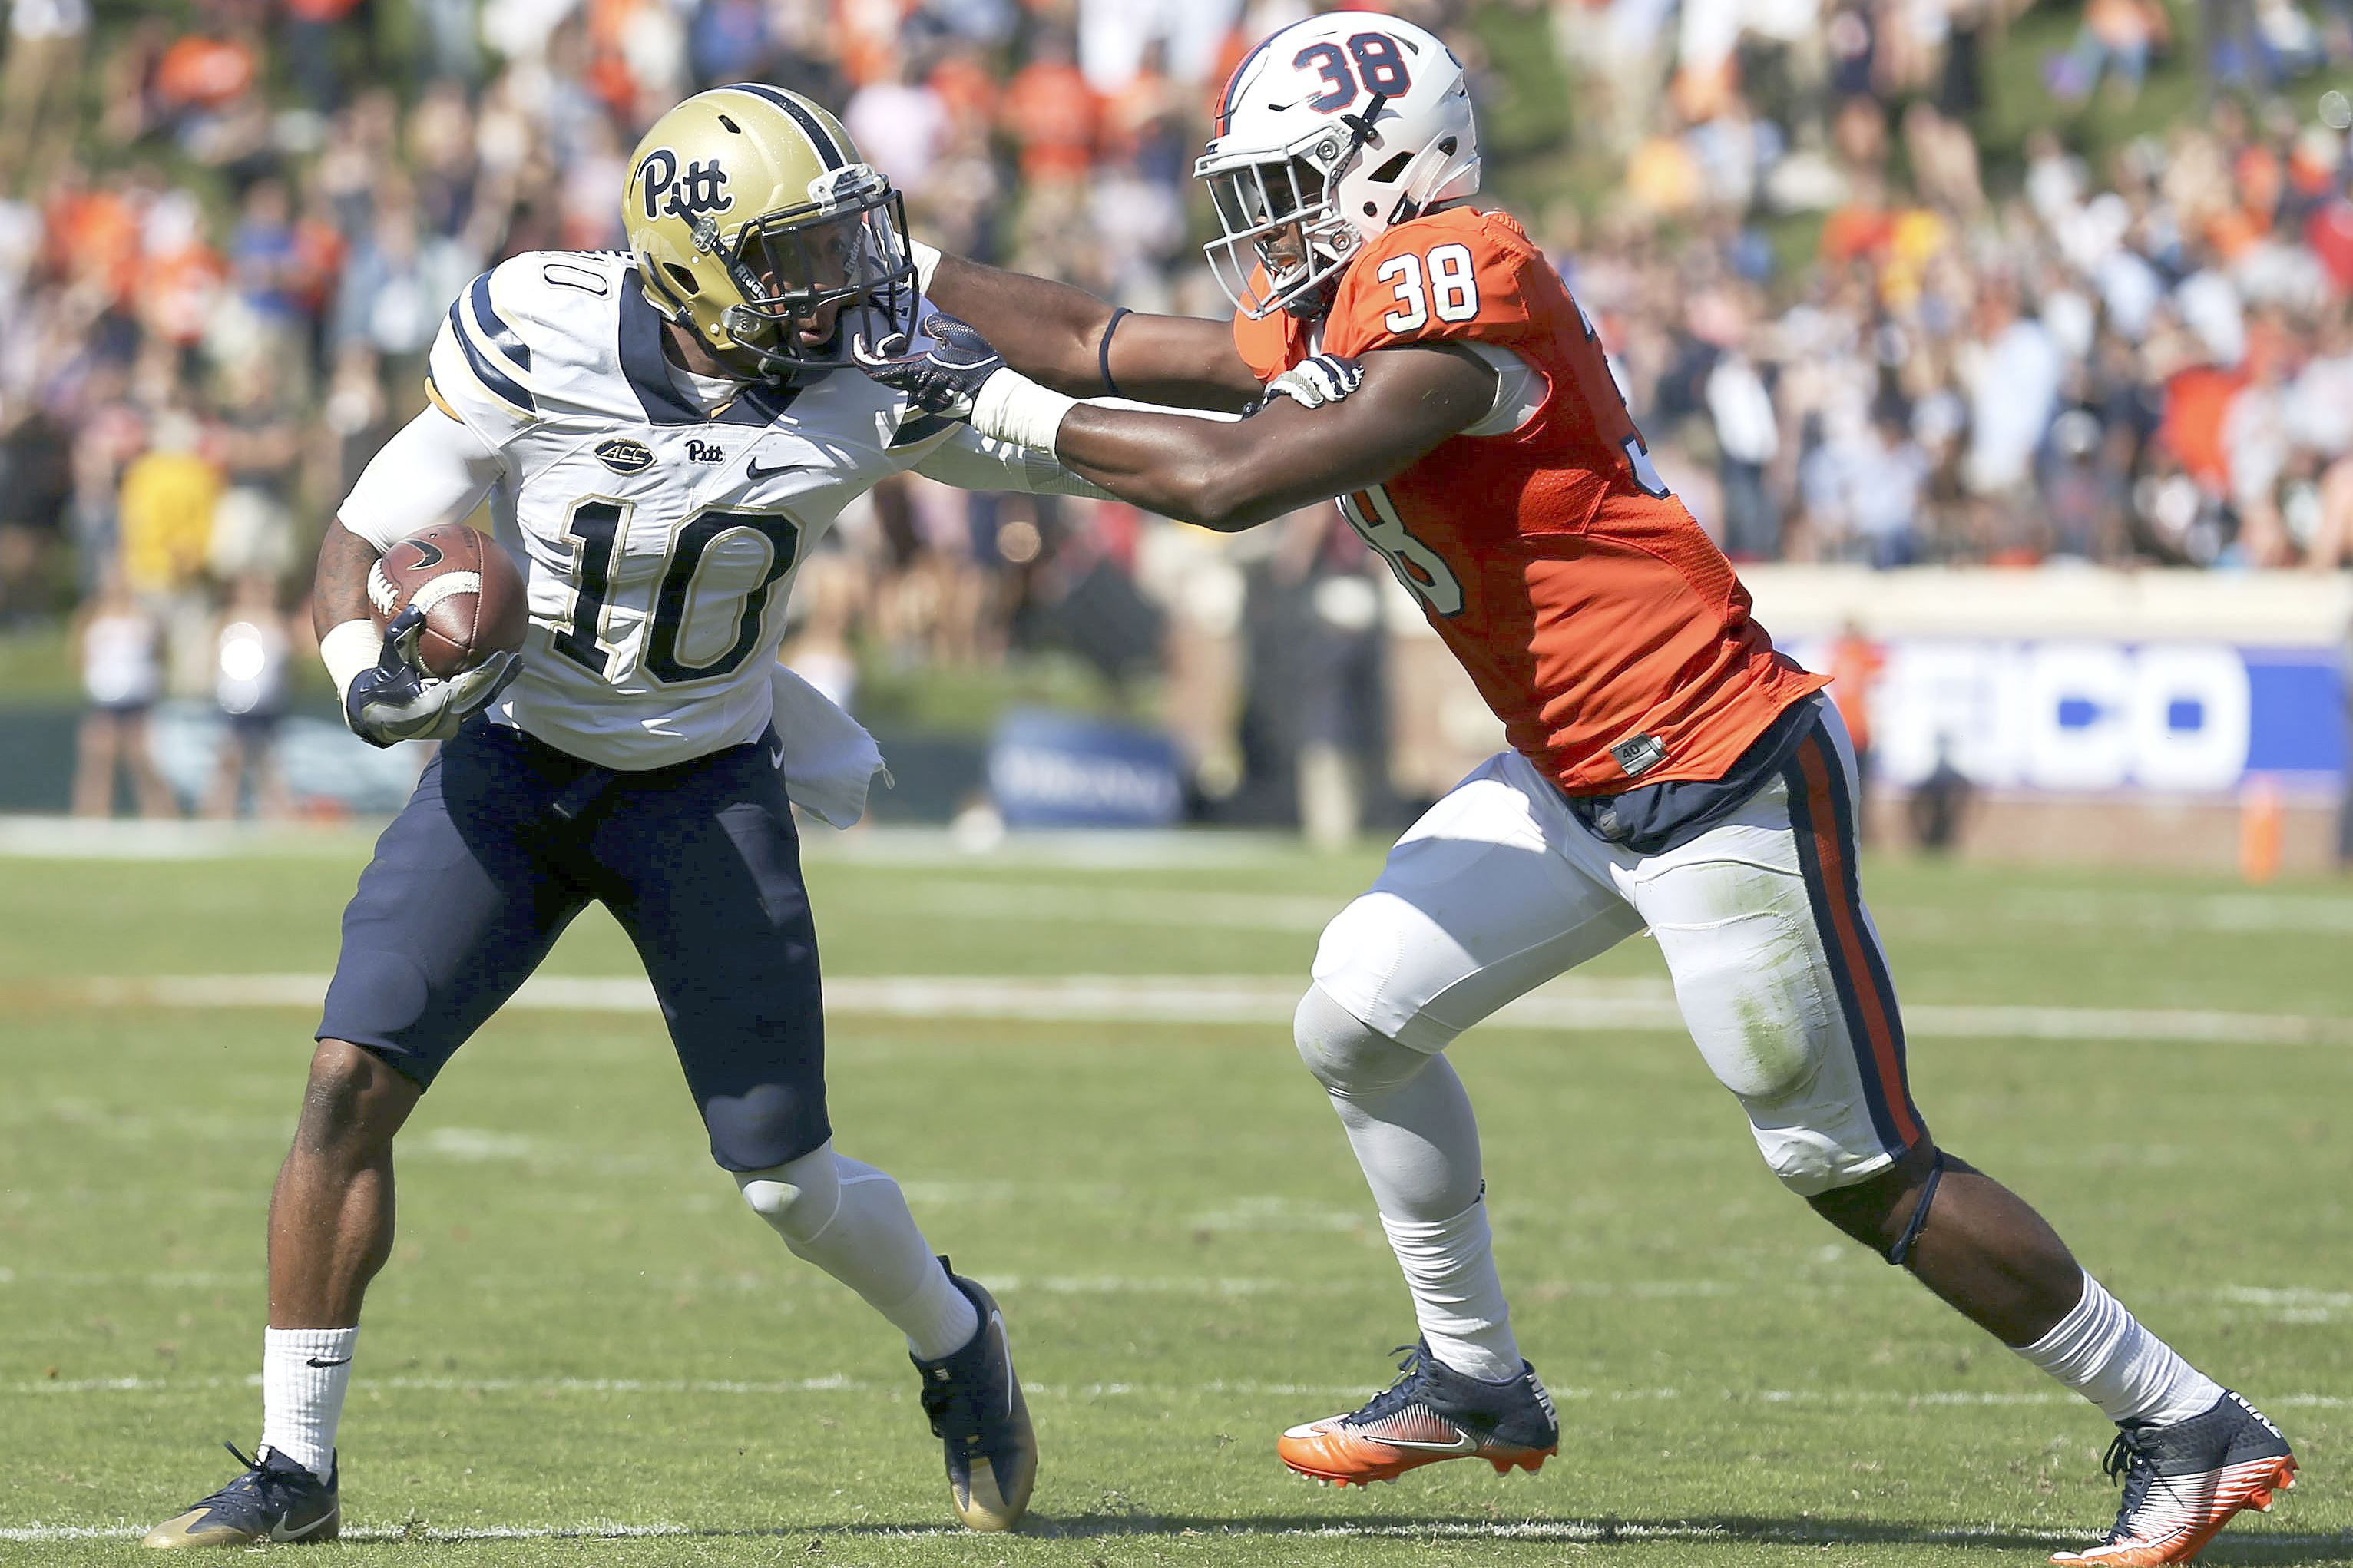 Pitt's pass rush to test Miami's beleaguered offensive line